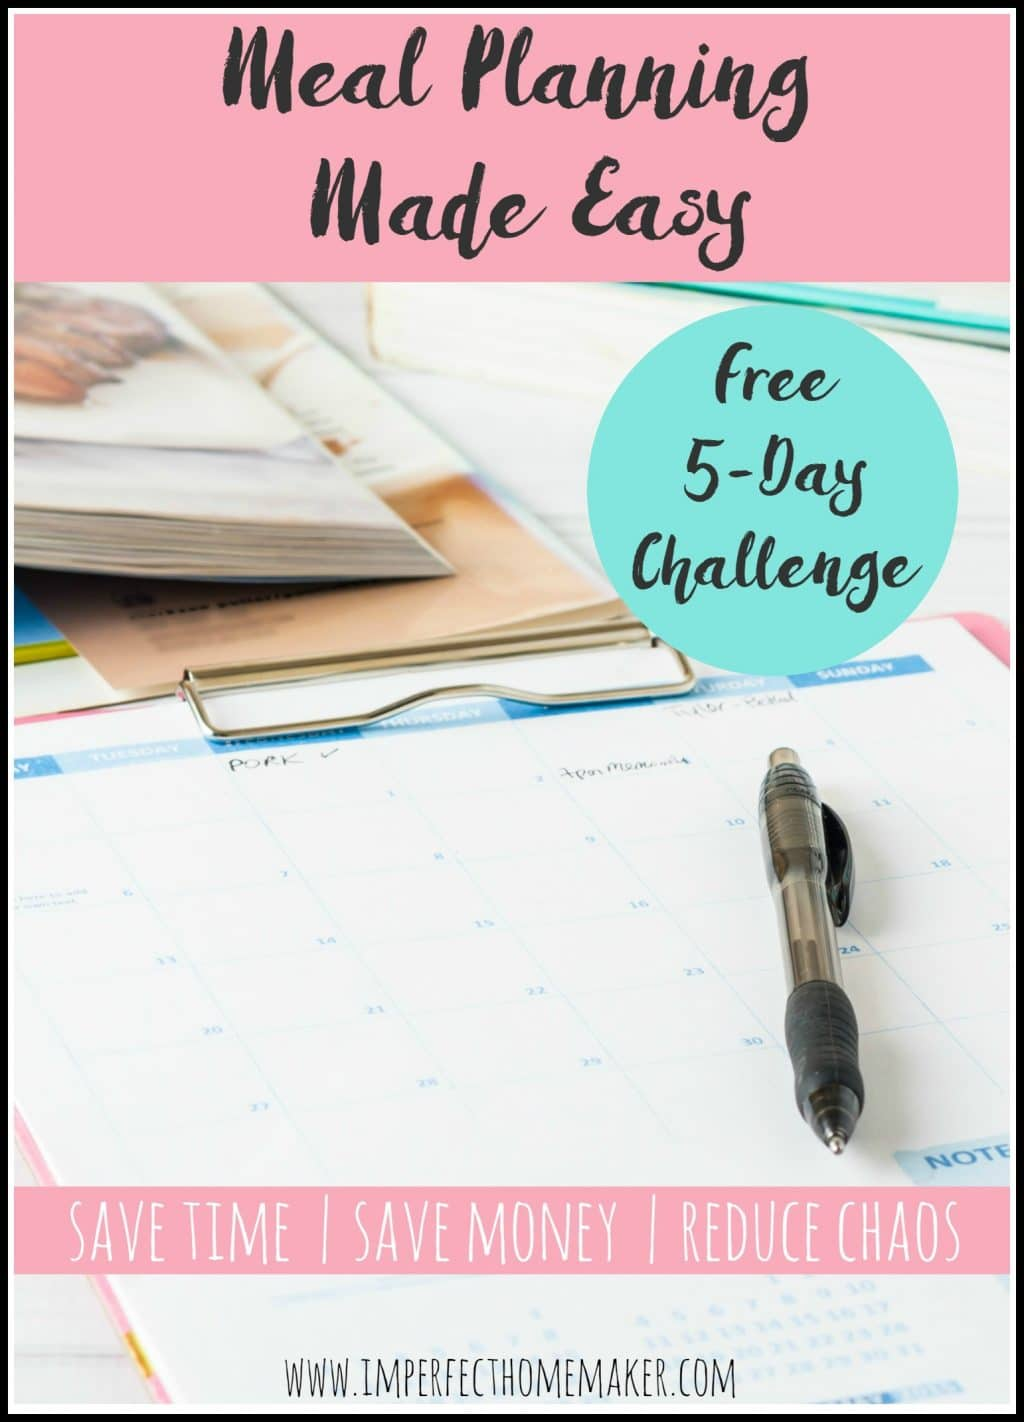 Free Meal Planning Made Easy Challenge